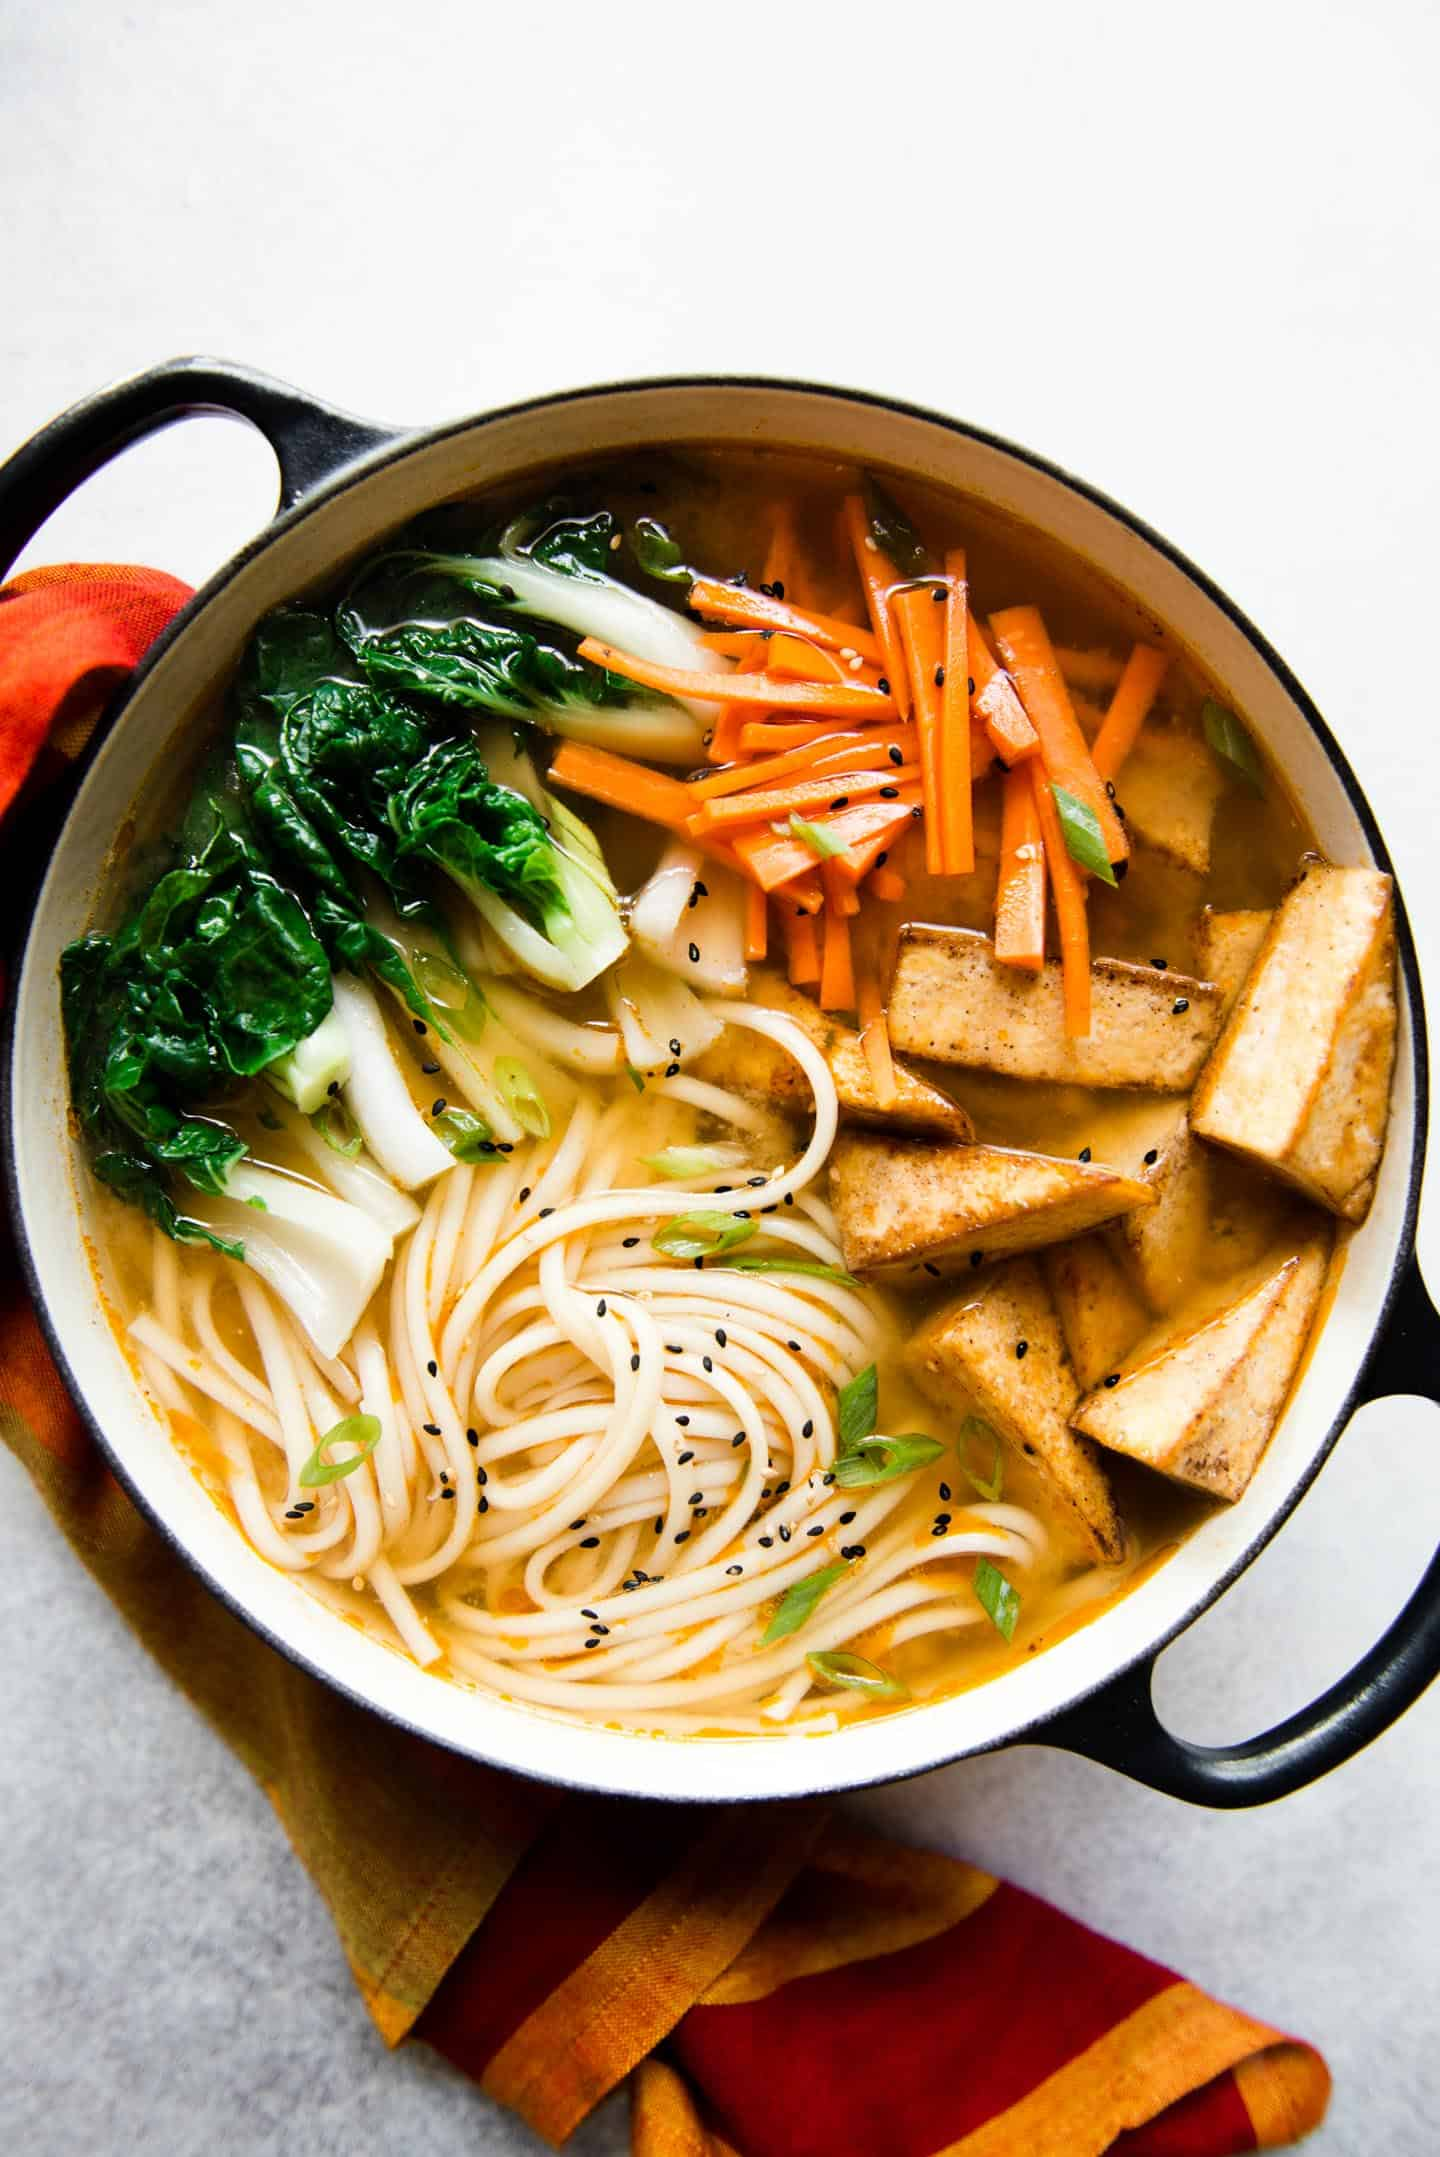 Ginger Miso Udon Noodles With Five Spice Tofu Vegan Healthy Nibbles